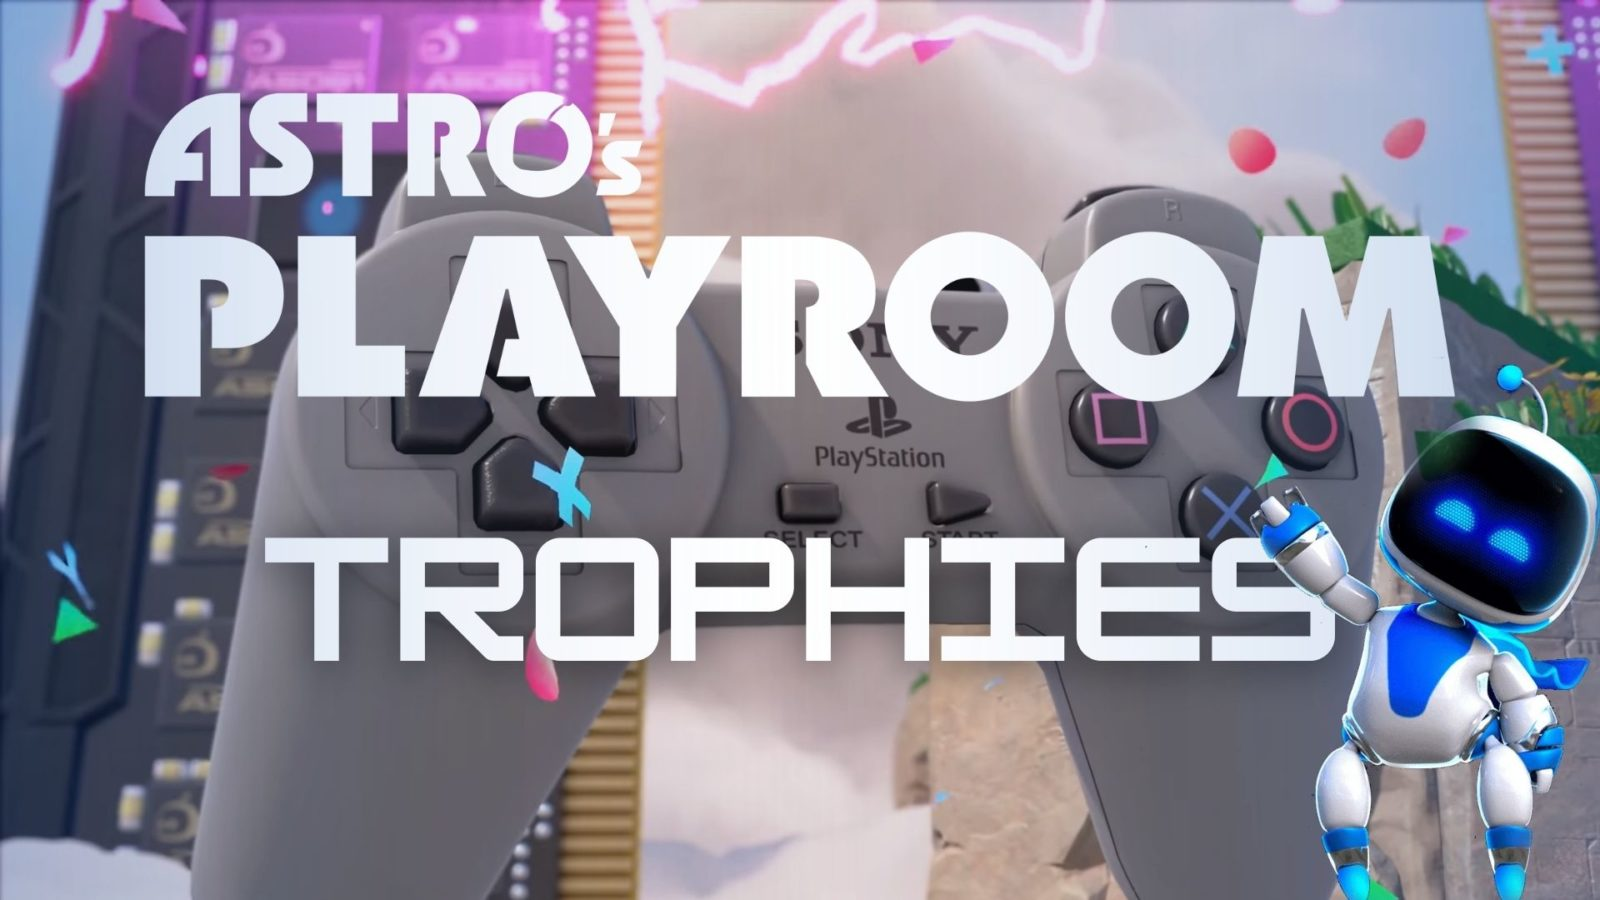 Astros playroom trophies free ps5